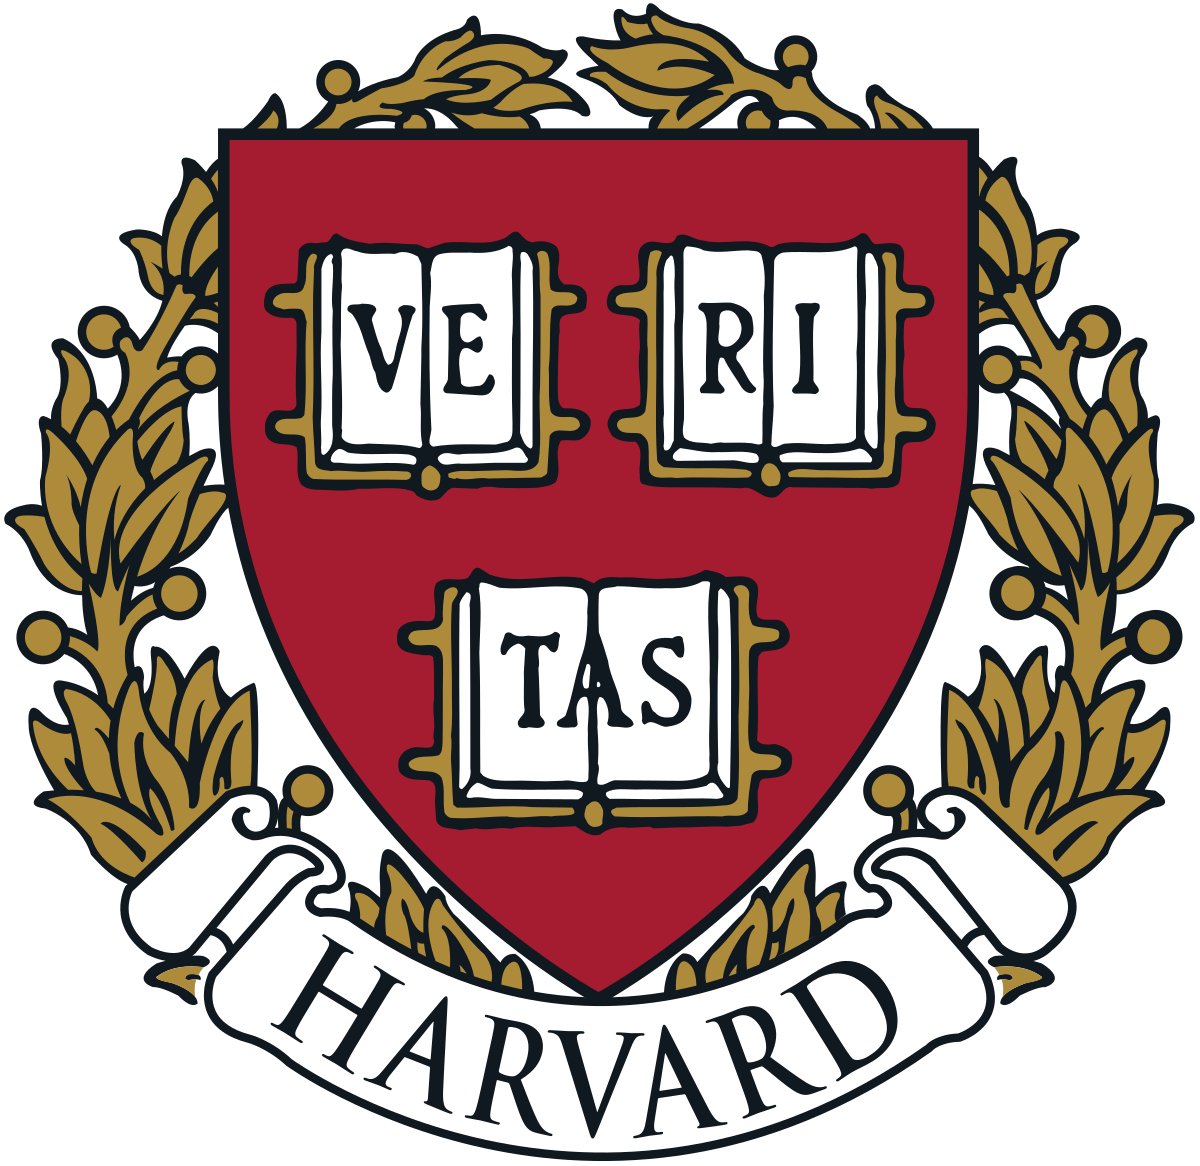 Harvard shield wreath